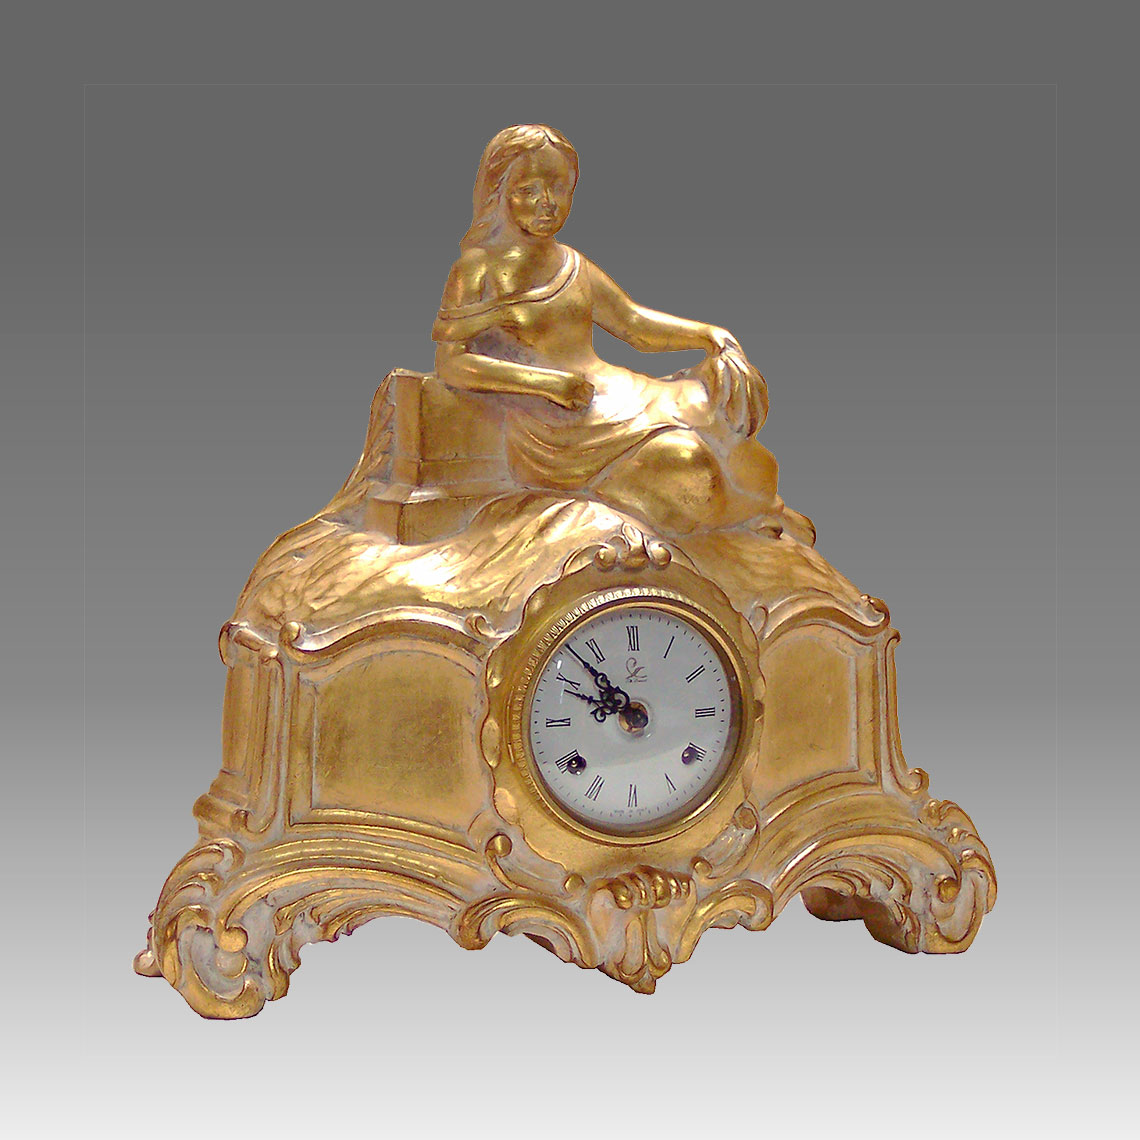 Mante Clock, Table Clock, Cimn Clock, Art.324/G in gold leafe de cape white - Bim Bam melody on Bells, white round dial